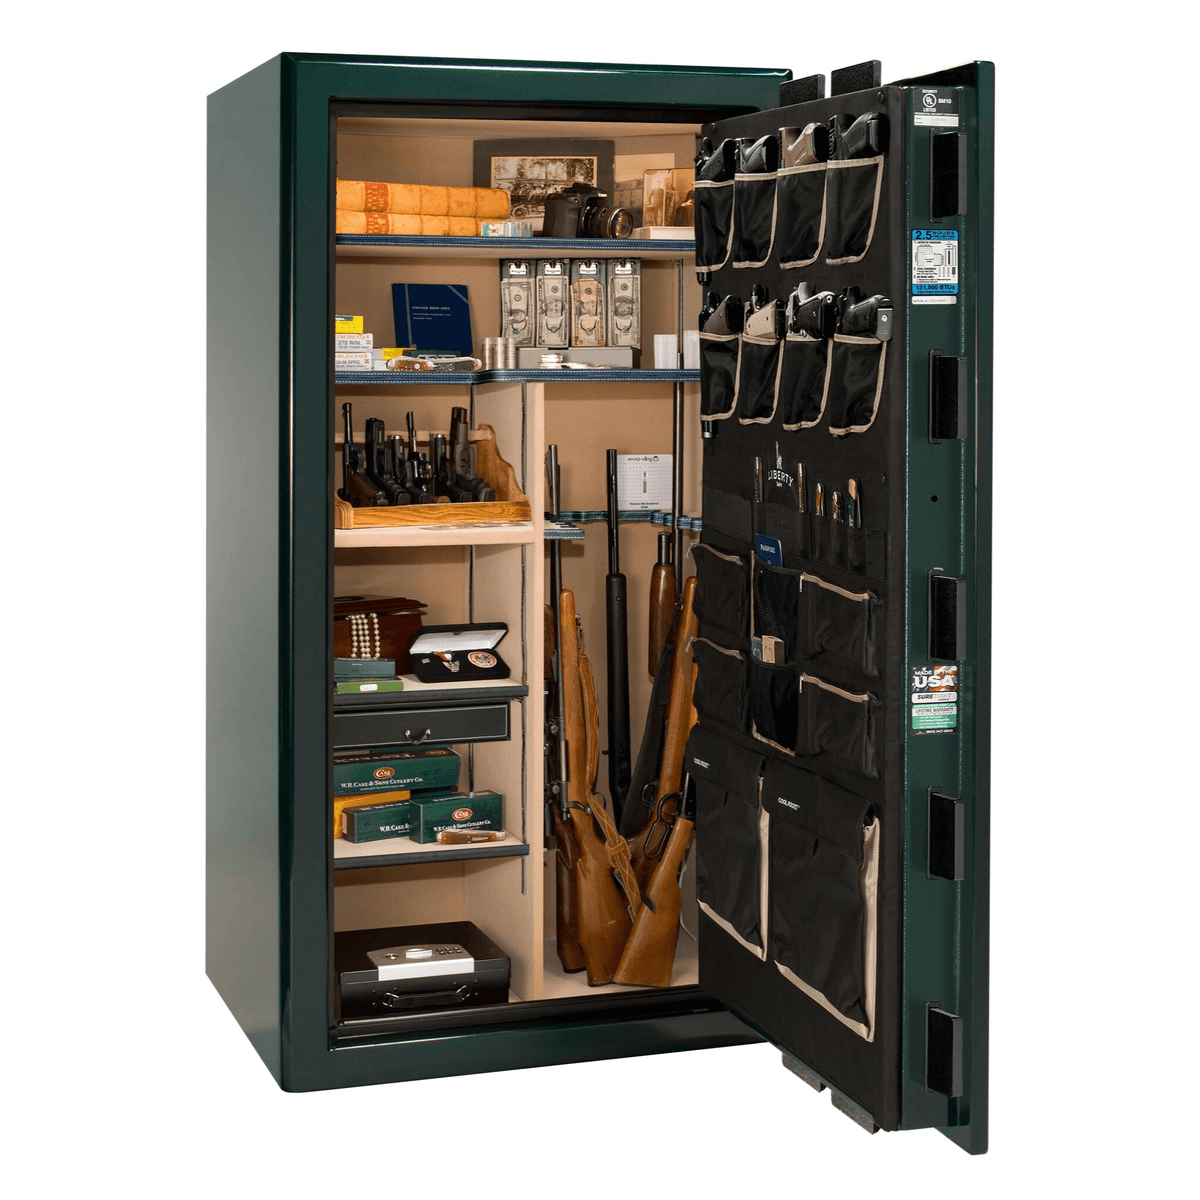 "Presidential | 40 | Level 8 Security | 150 Minute Fire Protection | Green Gloss | Brass Electronic Lock | 65.5""(H) x 36""(W) x 32""(D)"